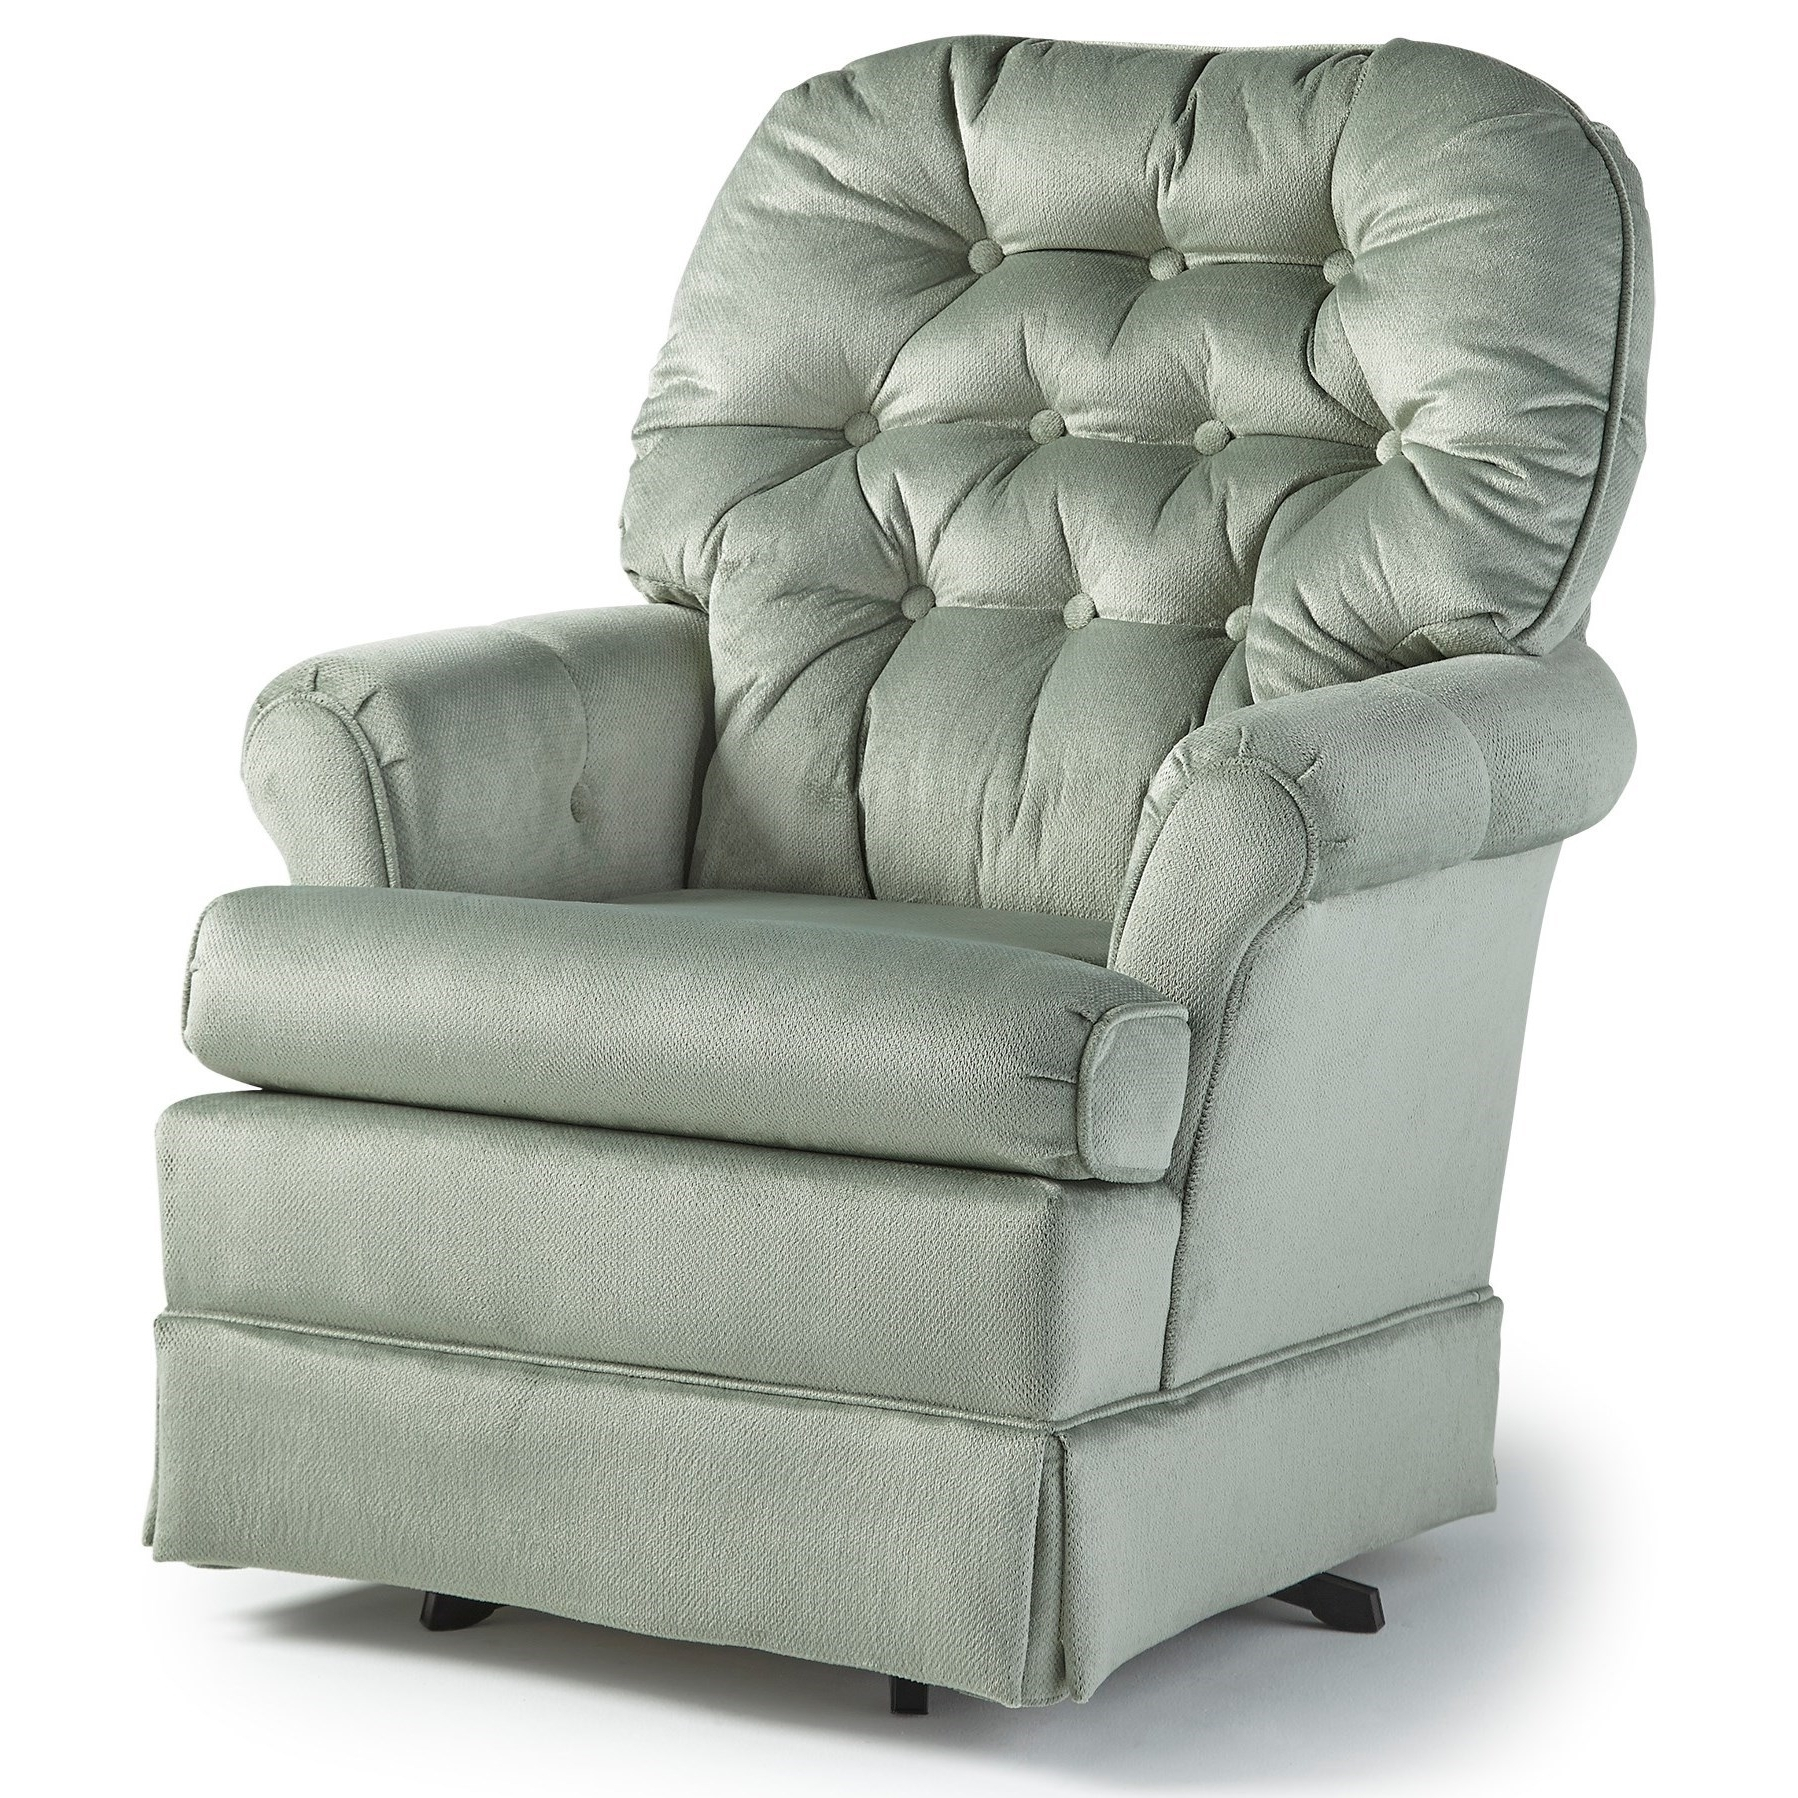 Widely Used Swivel Rocking Chairs Throughout Best Home Furnishings Swivel Glide Chairs 1559 Marla Swivel Rocker (View 15 of 15)